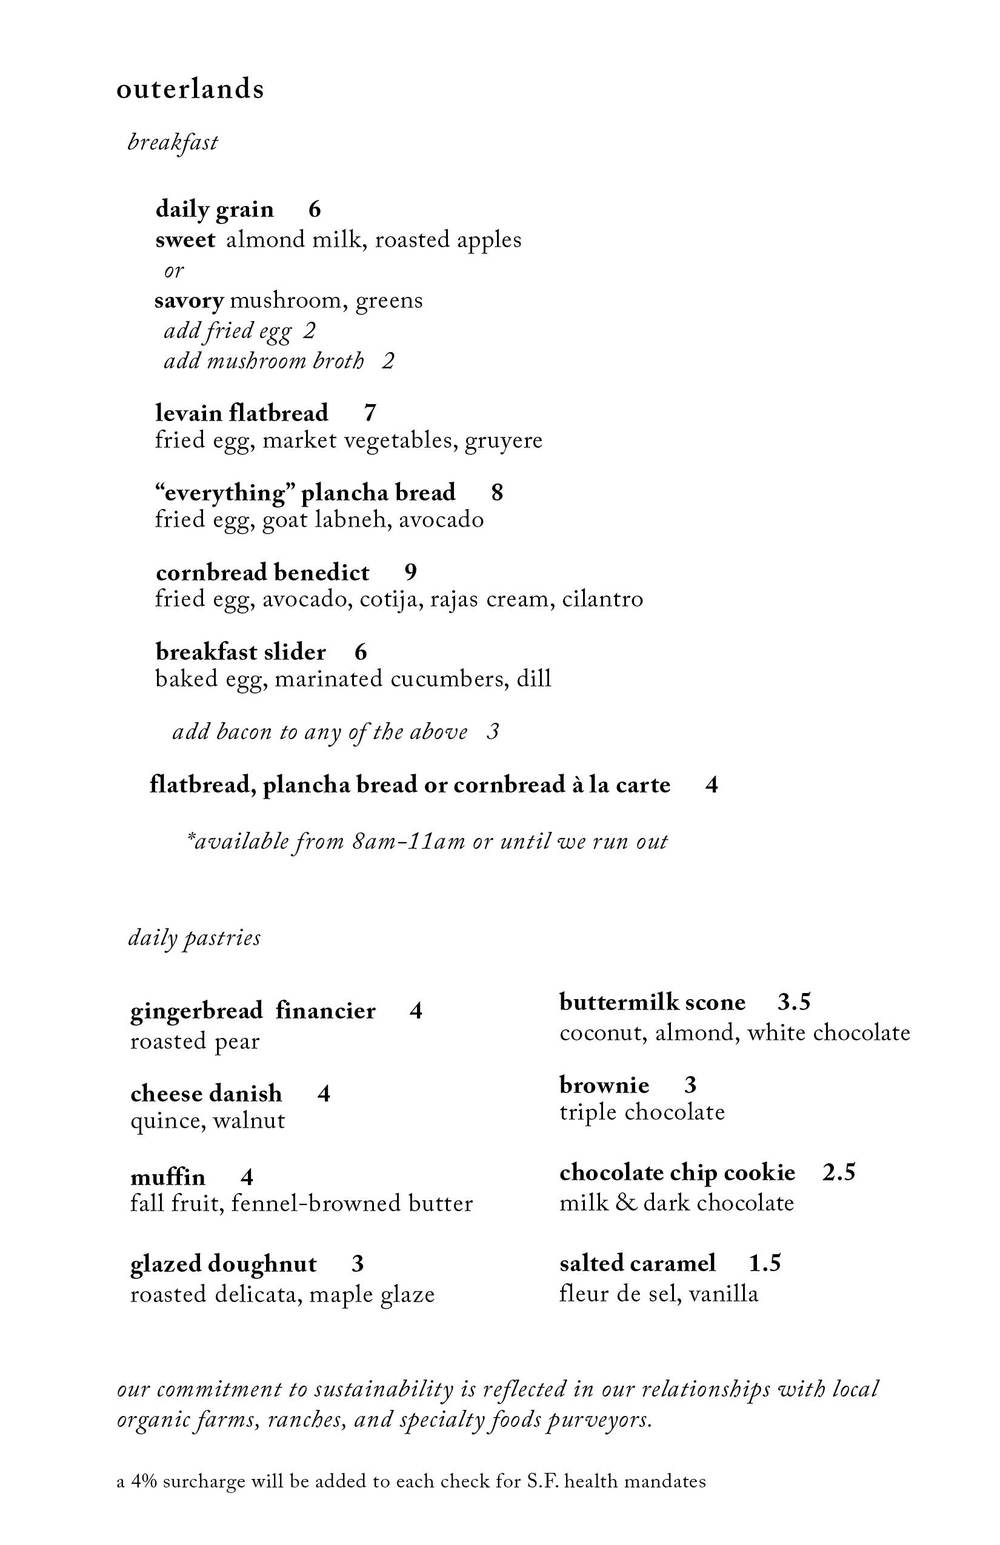 * sample weekday breakfast menu